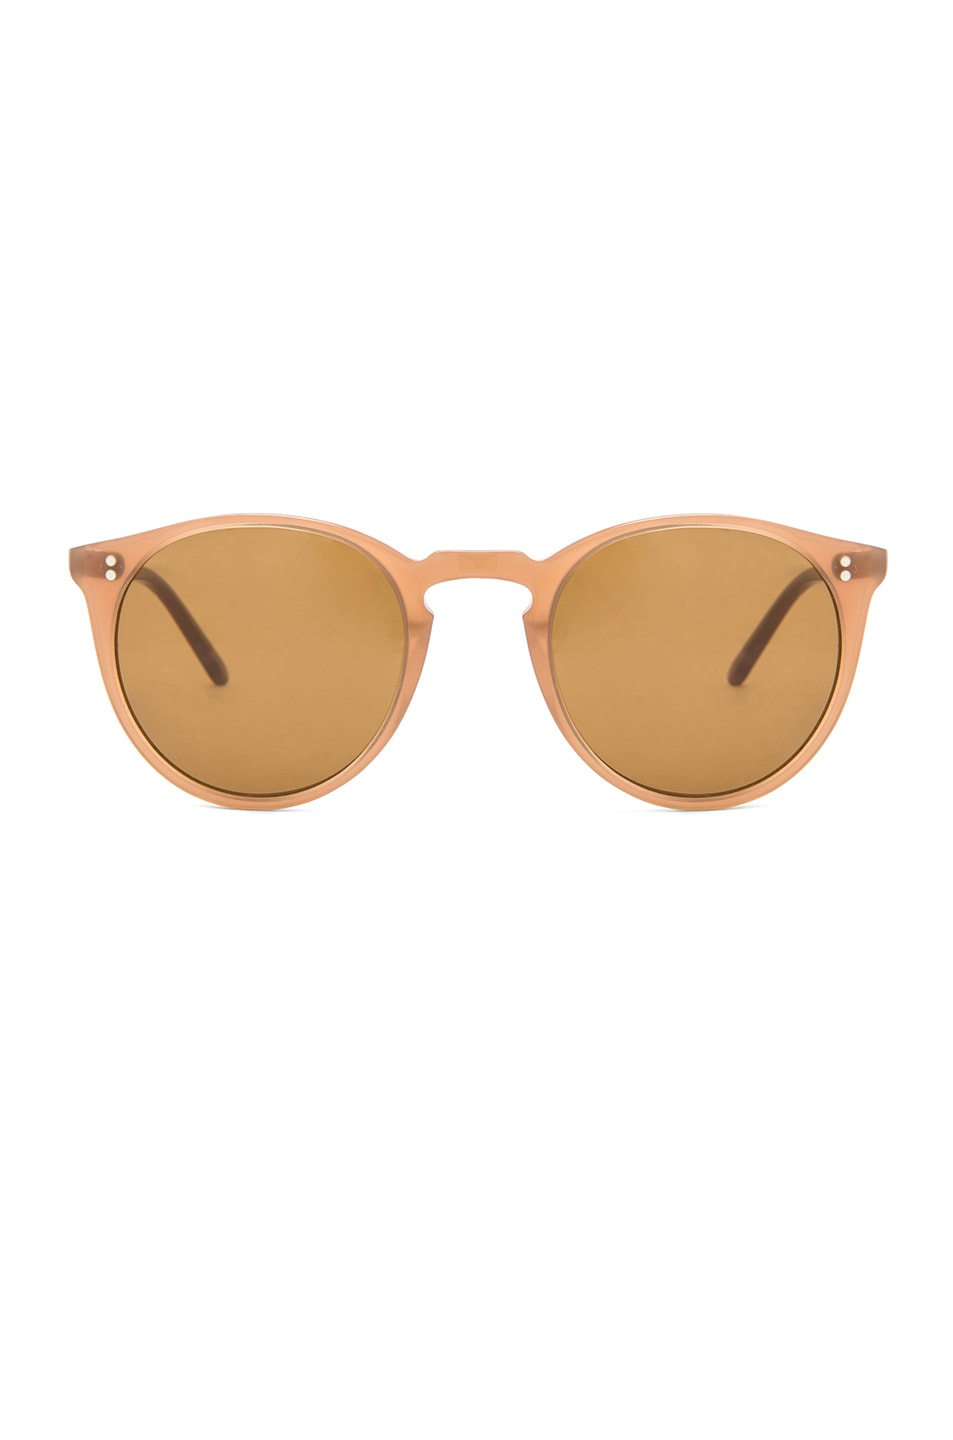 Image 1 of Oliver Peoples O'Malley NYC Sunglasses in Topaz & Brown